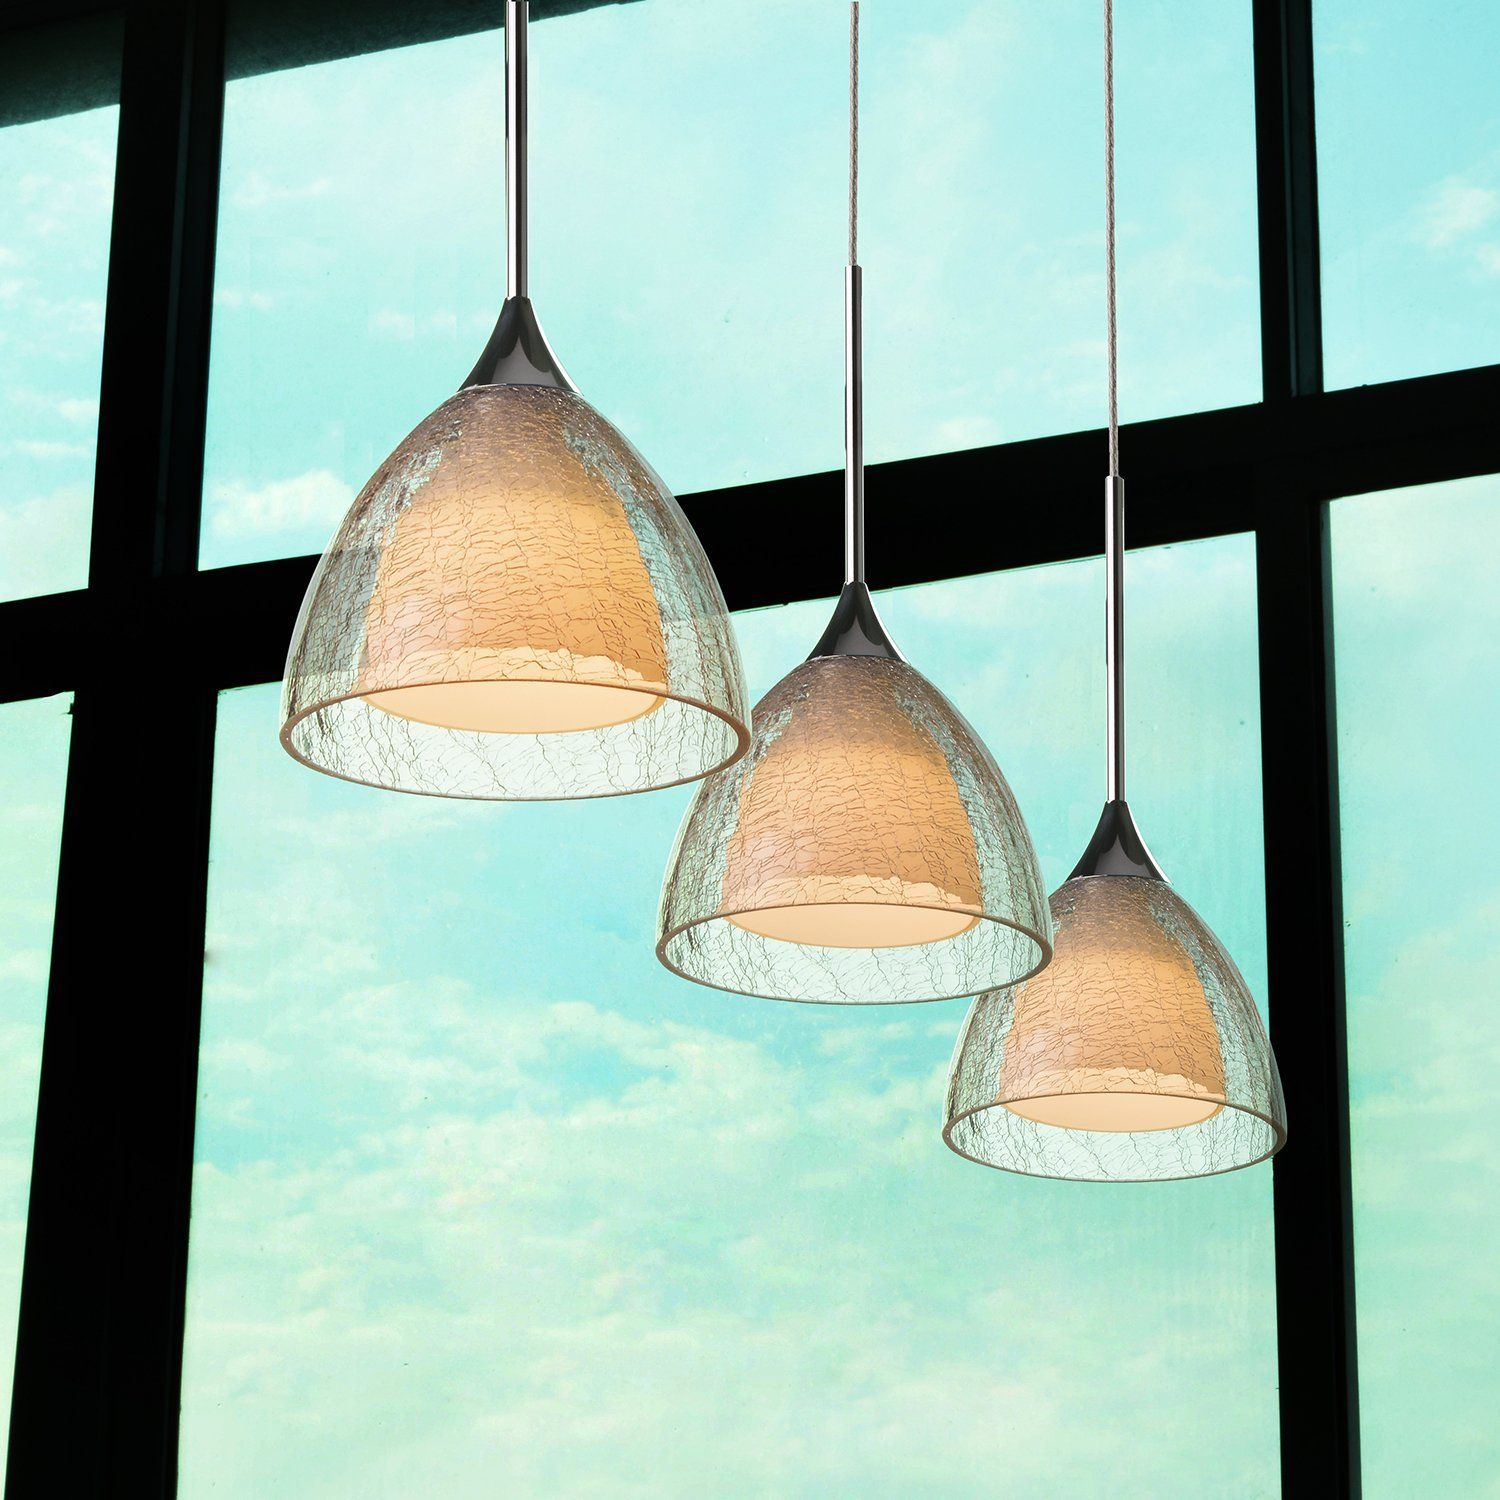 OBSESS 5W LED One-Light Adjustable Mini Pendant Light with Handblown Crack Glass Shade and Aluminium Trim, Polished Chrome(Kitchen/Bar Pendant Light, Dimmable, 4-Inch Ceiling Canopy) ¡ - - Amazon.com